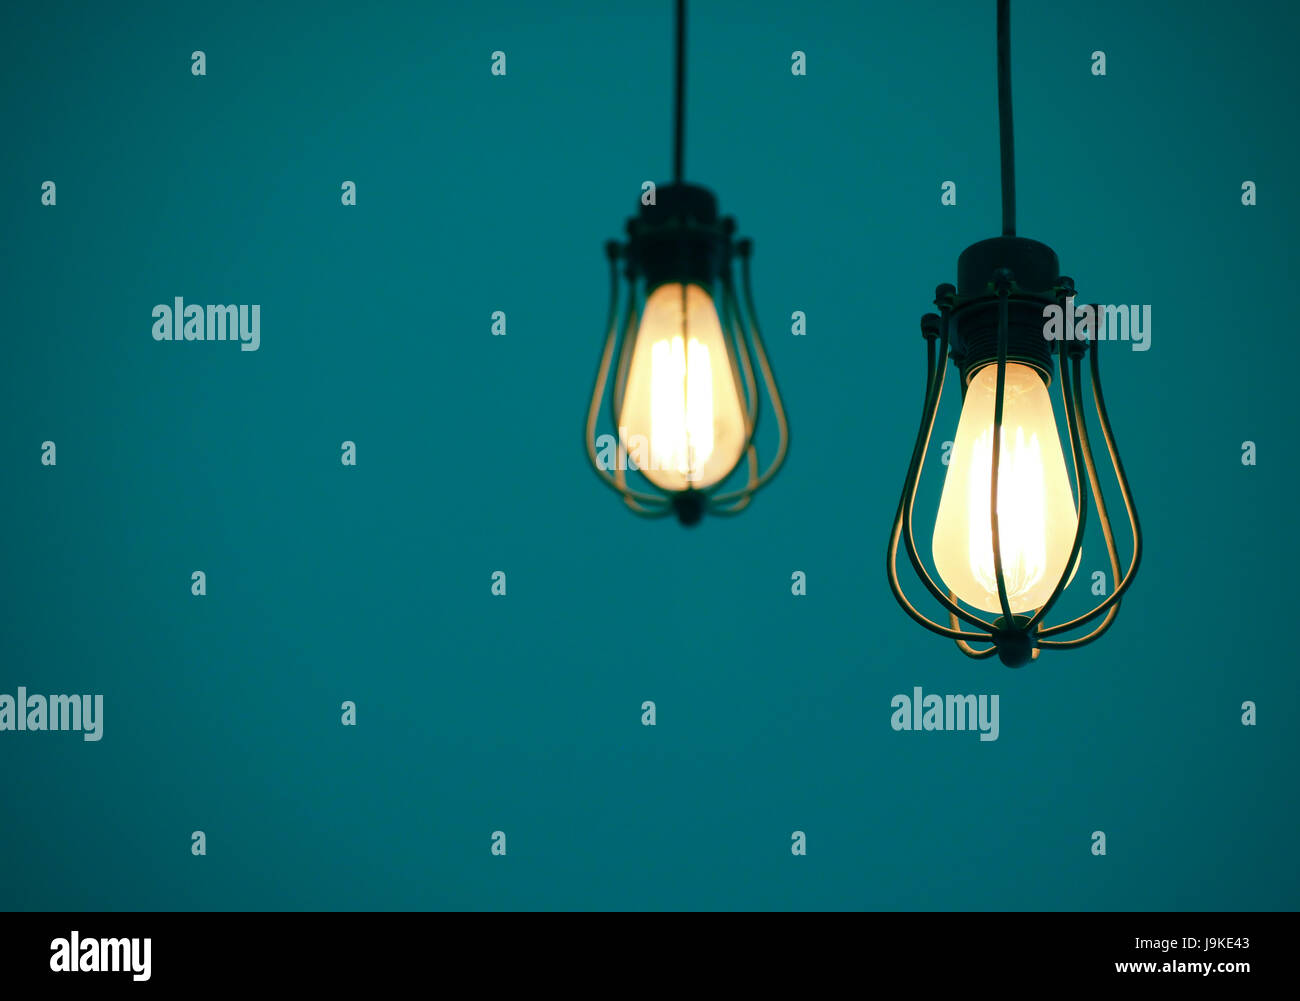 Illuminated Hanging Light Bulbs On Blue Plain Background With Free Text  Space